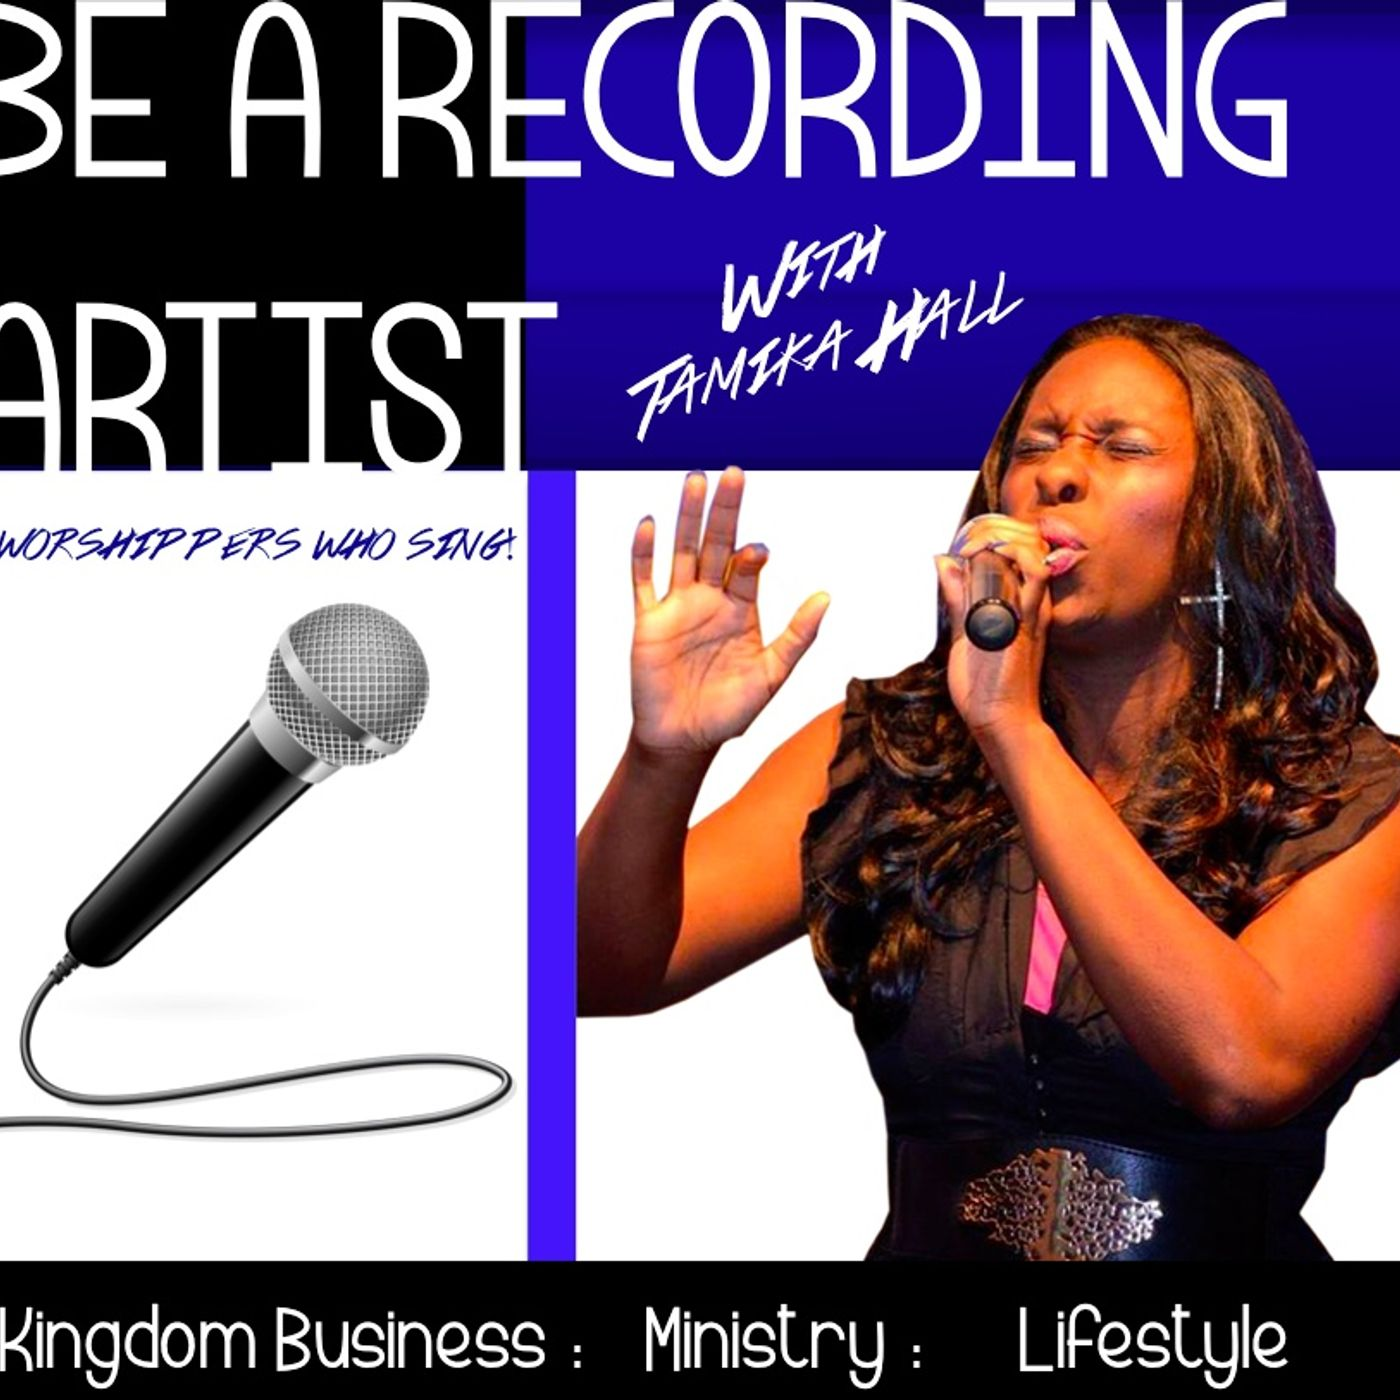 Be a Recording Artist